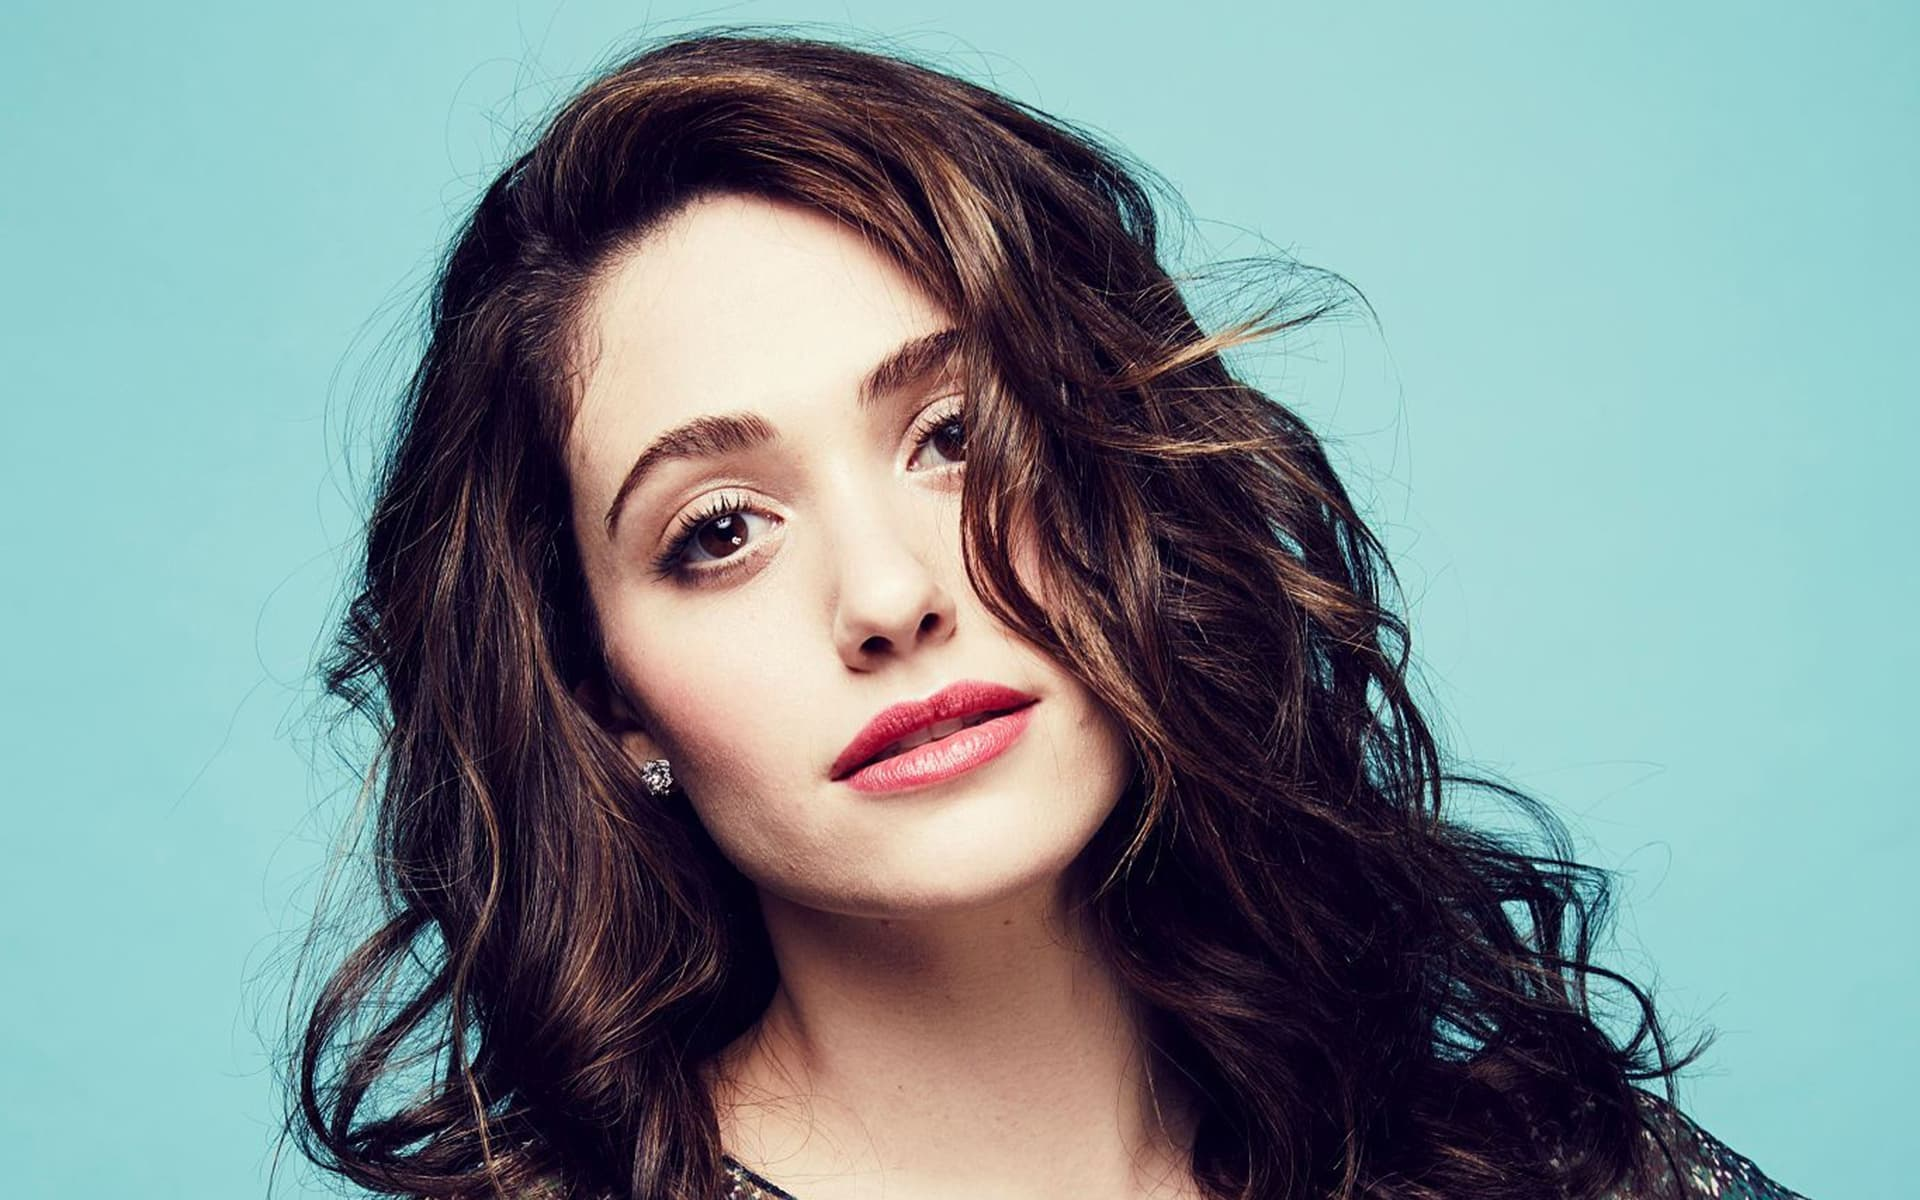 emmy rossum wallpapers hd wallpapers 1920x1200